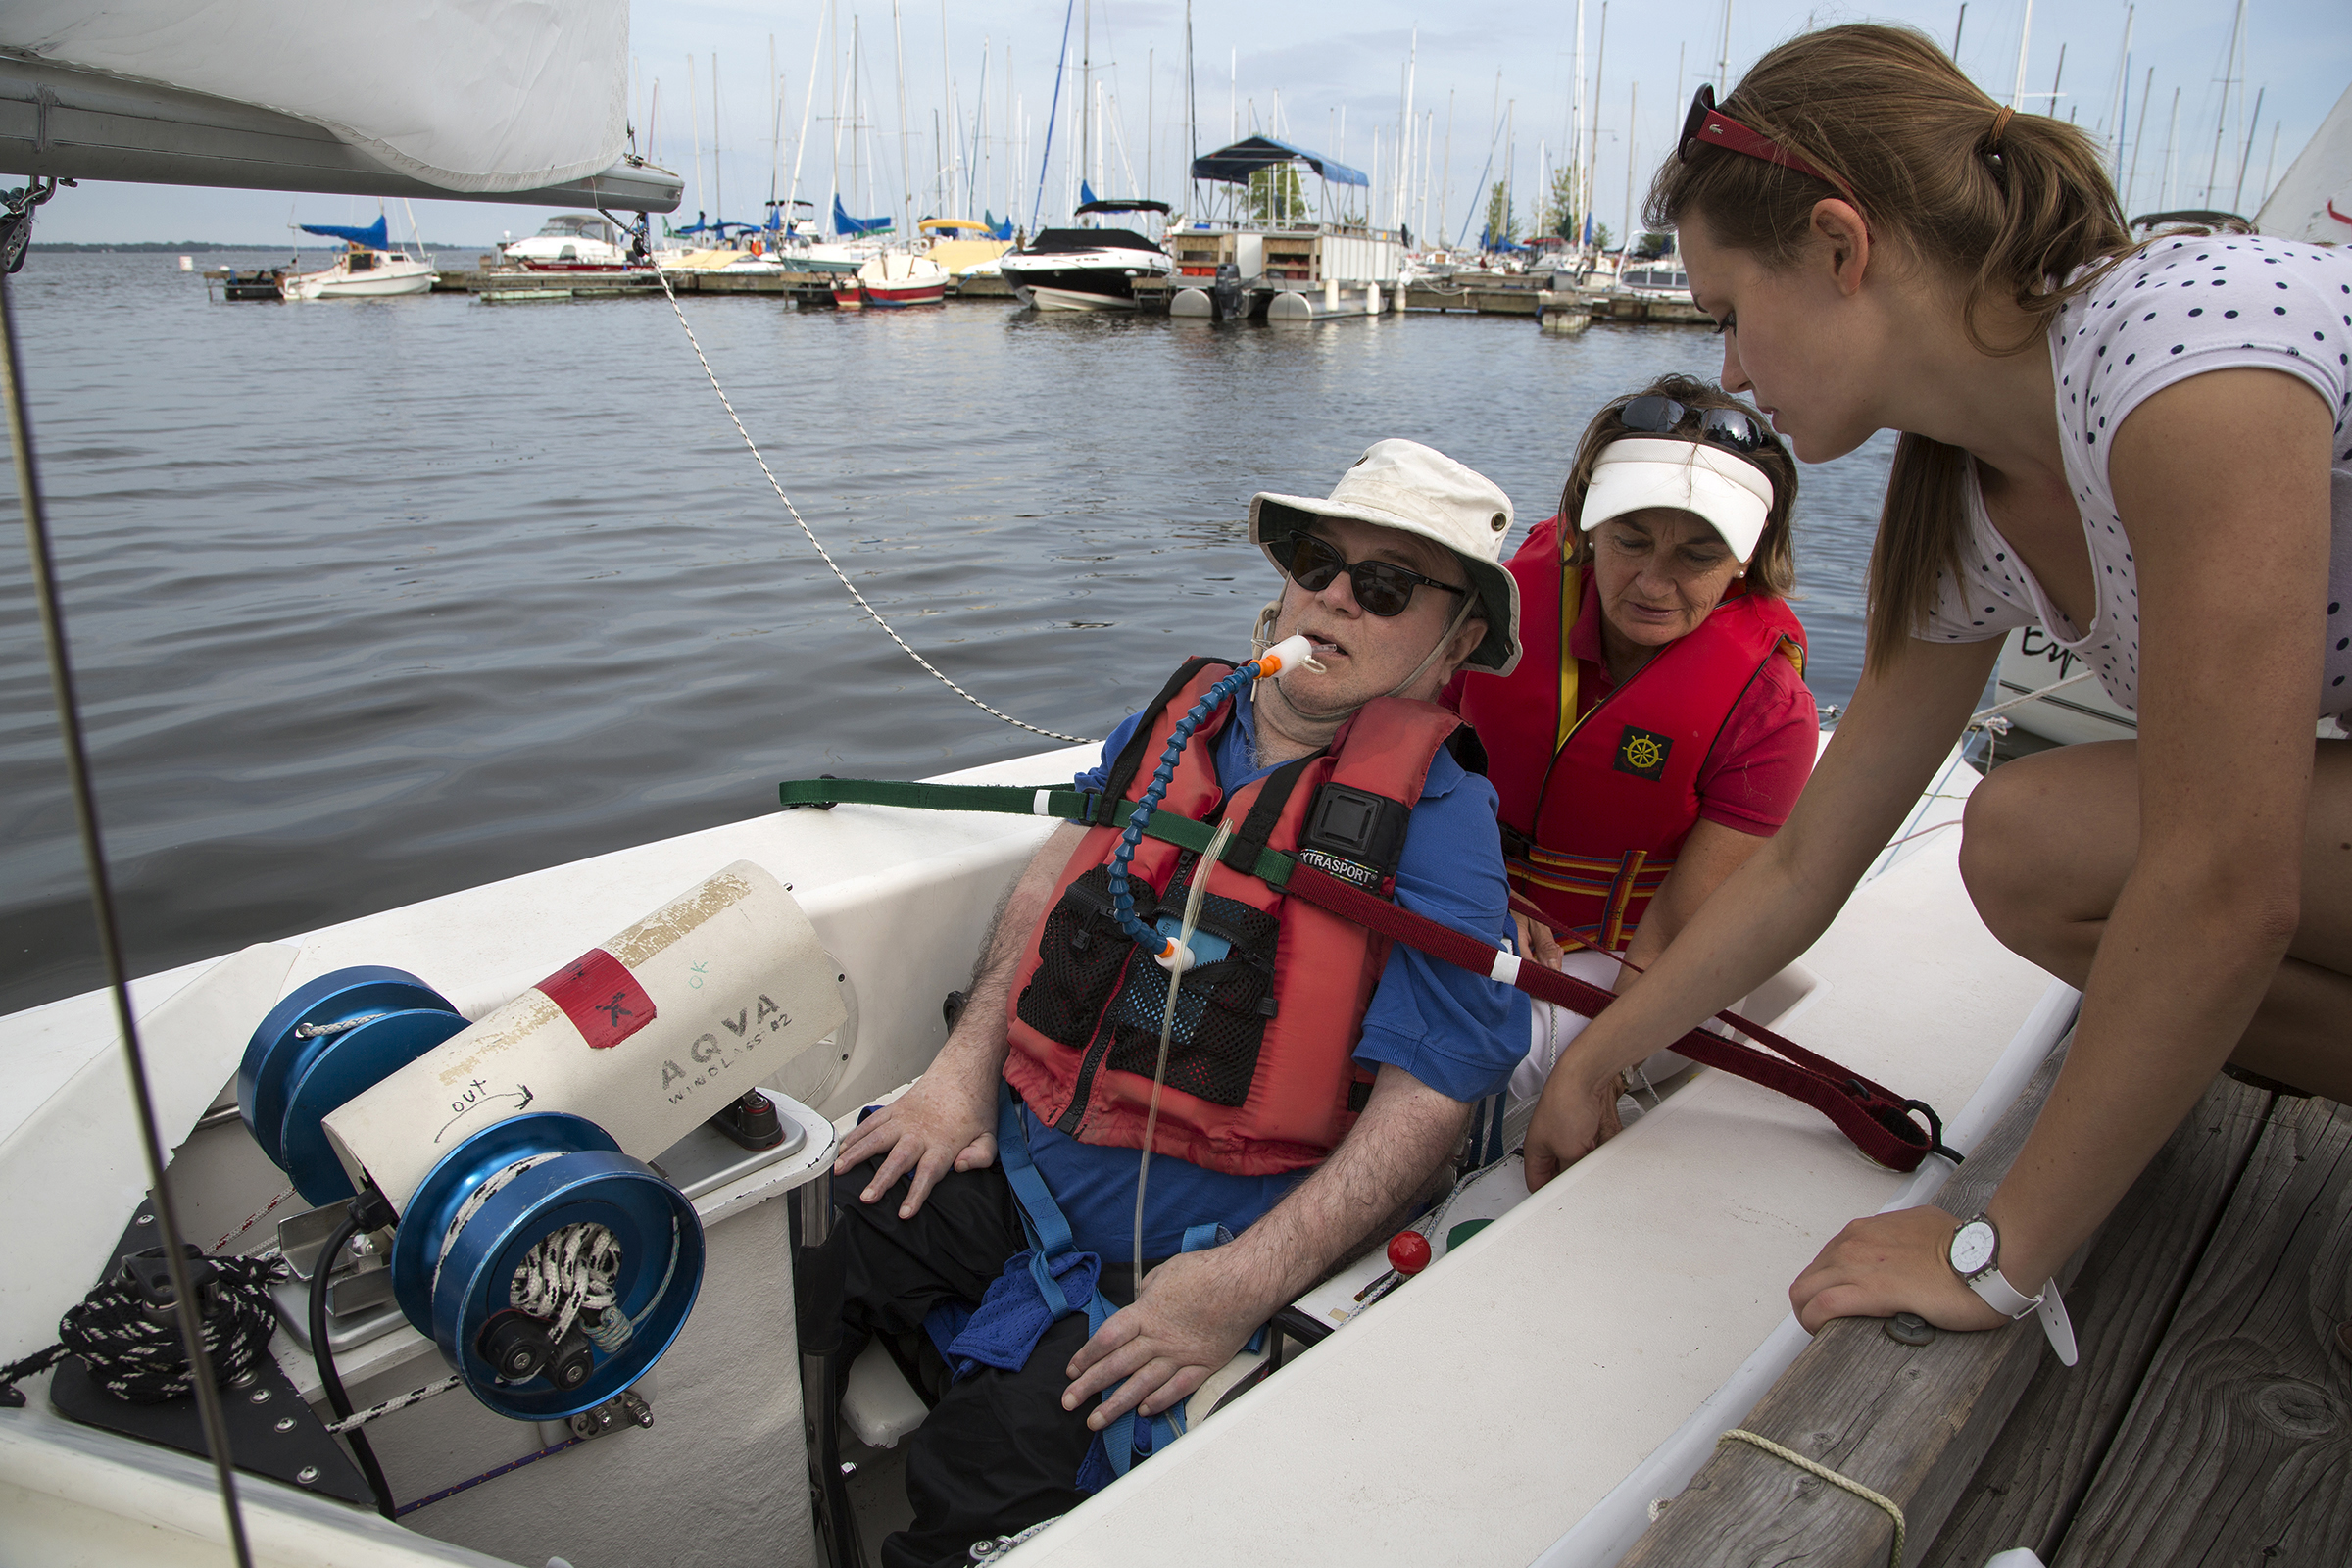 POINTE-CLAIRE, QC. AUGUST 20, 2014 -- Skipper René Dallaire, a quadriplegic and Executive Director of Association québécoise de voile adaptée, is secured into a sailboat at the Pointe Claire Yacht Club in the West Island of Montreal, along with Senneville mayor Jane Guest on Wednesday, August 20, 2014. (Leslie Schachter/West Island Chronicle,  Transcontinental )